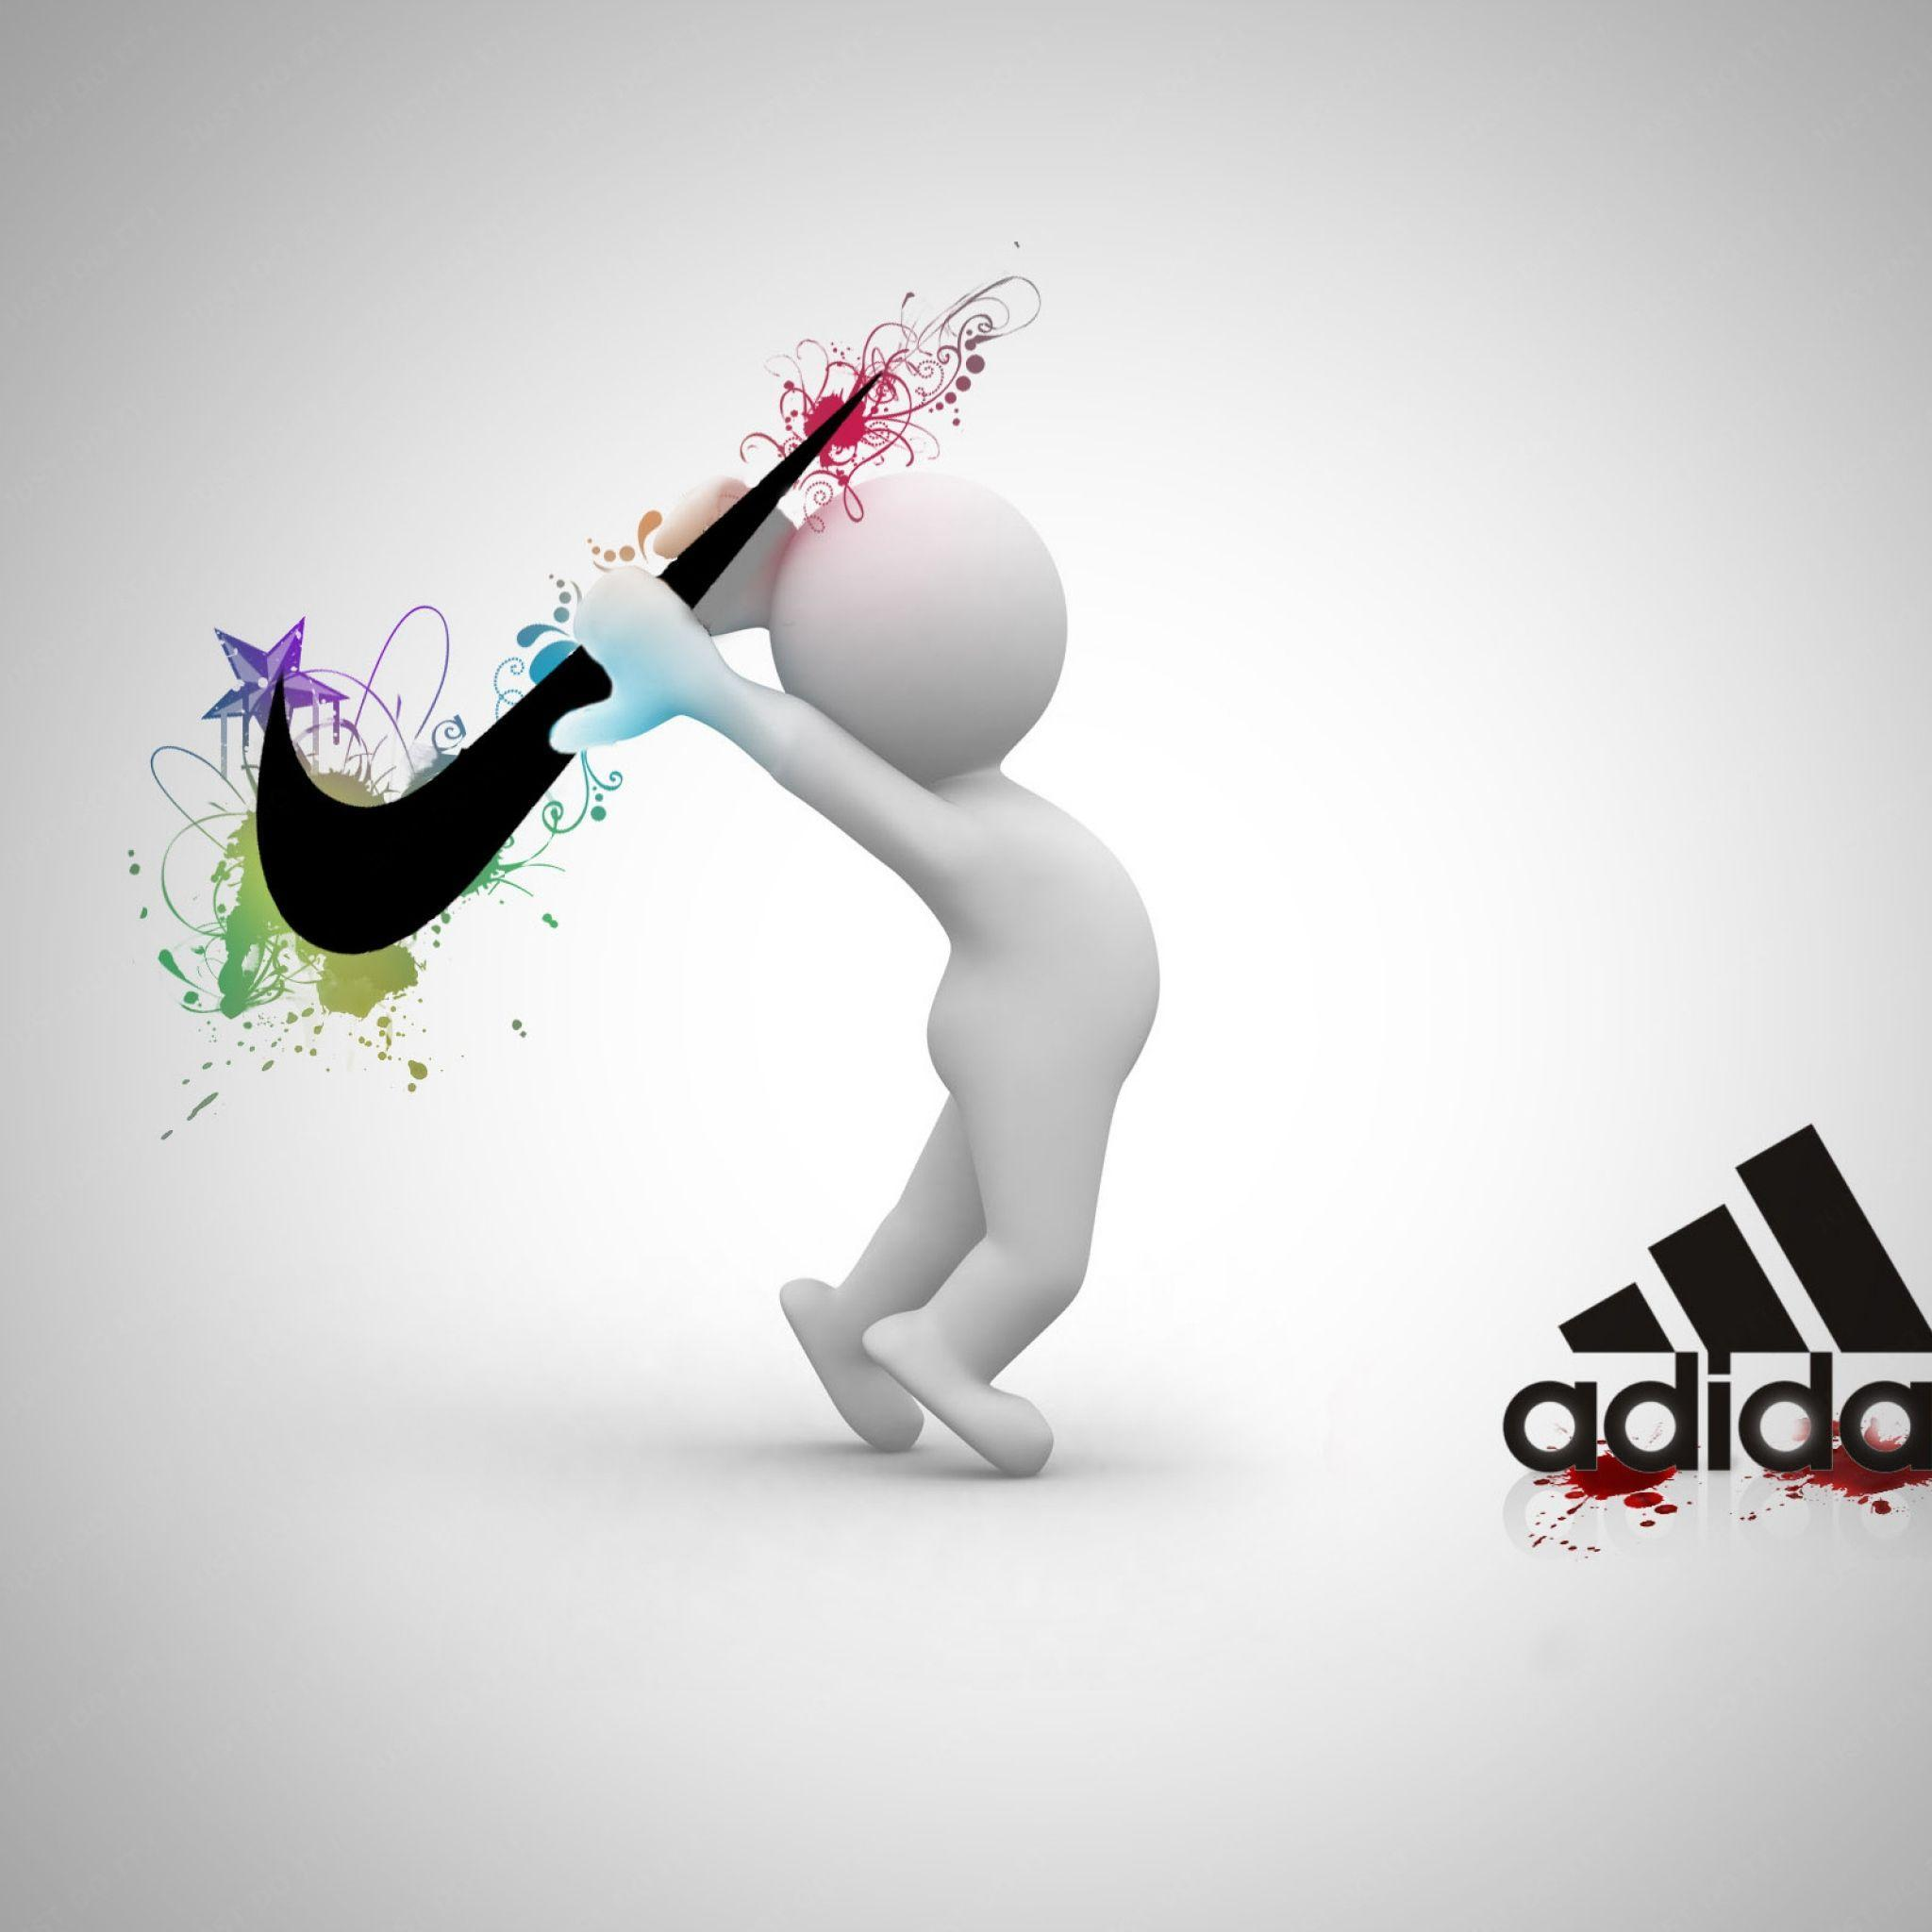 Nike Air Logo Wallpaper